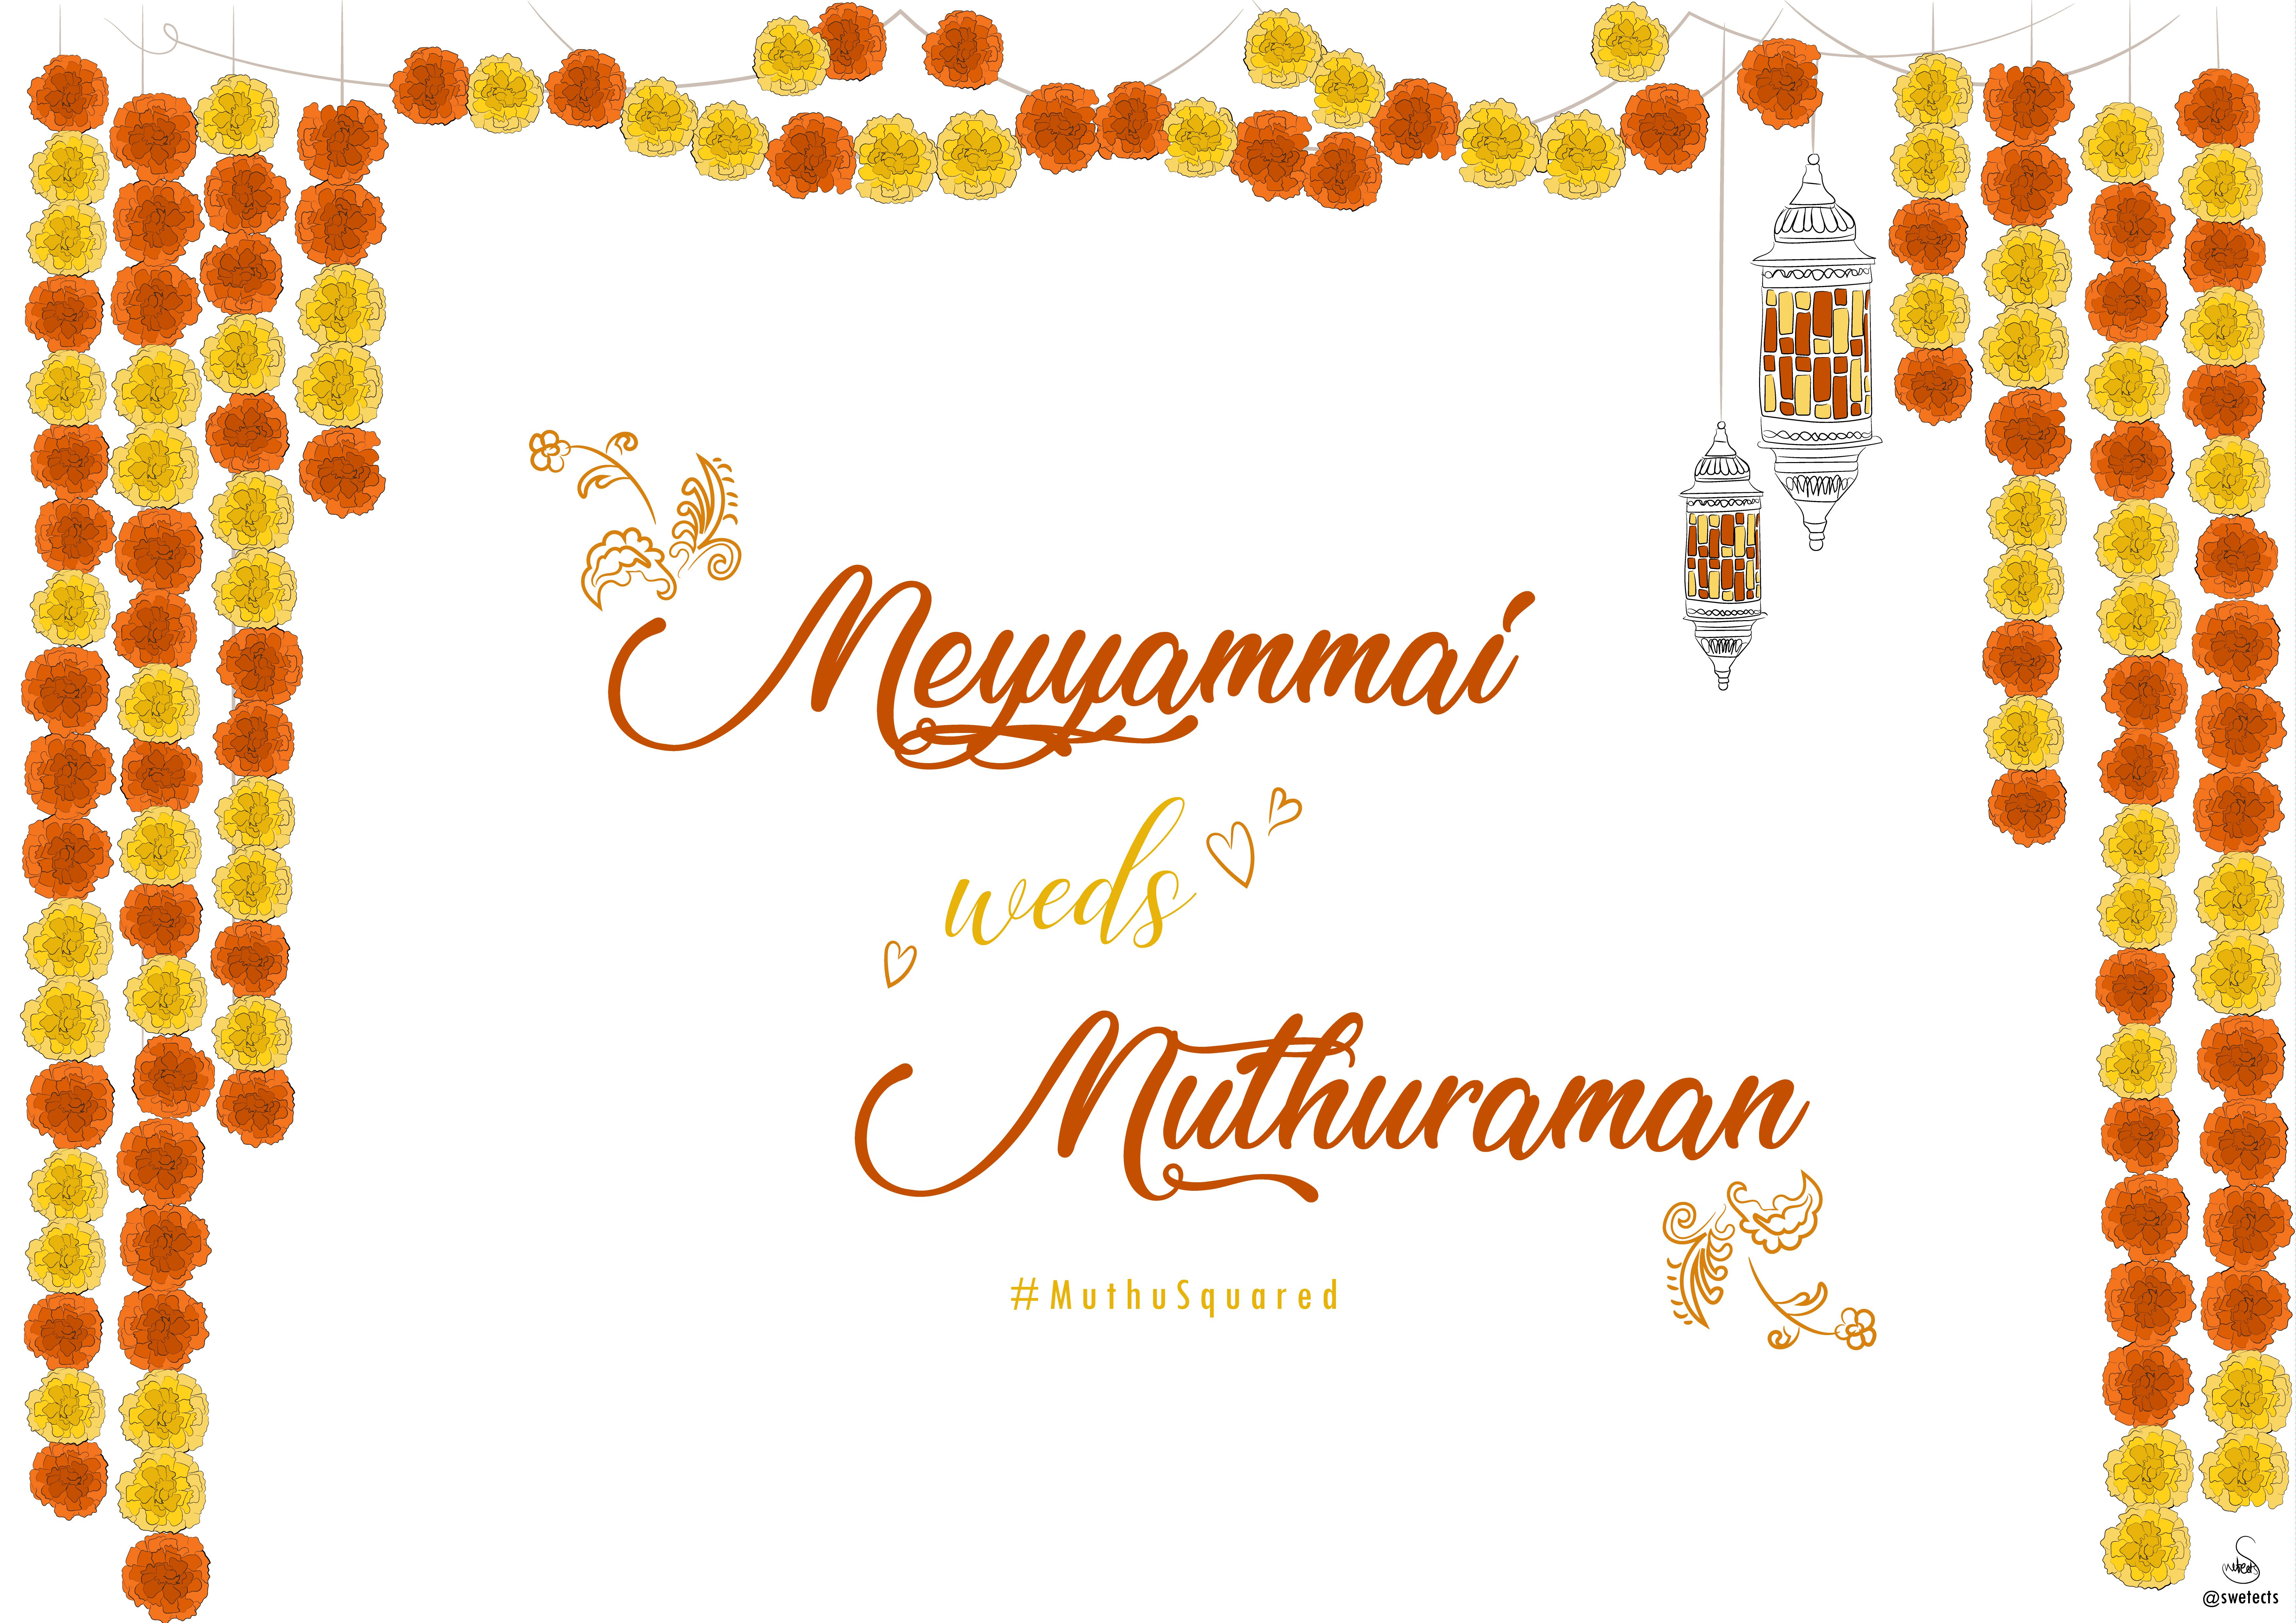 south indian wedding banner by swetects indianwedding banner southindian decoration i indian wedding invitation cards wedding banner design wedding cards pinterest